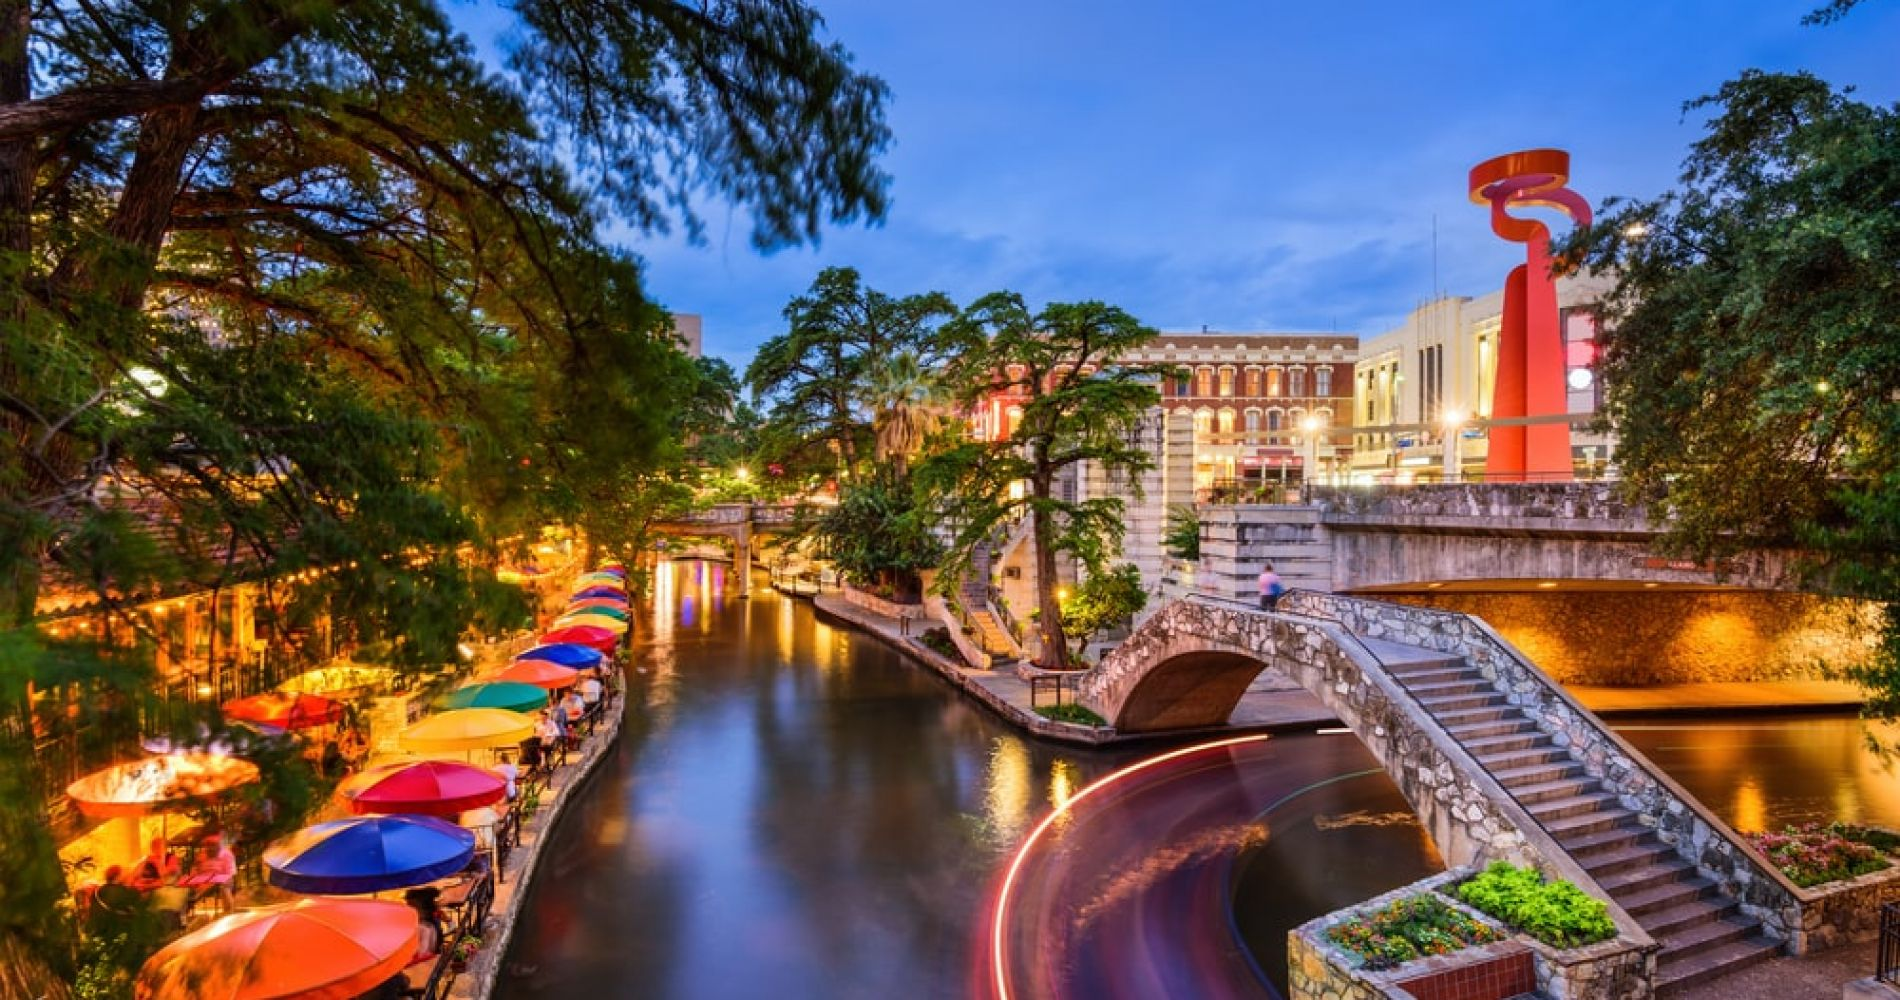 Go on a Famous San Antonio River Walk while in Texas